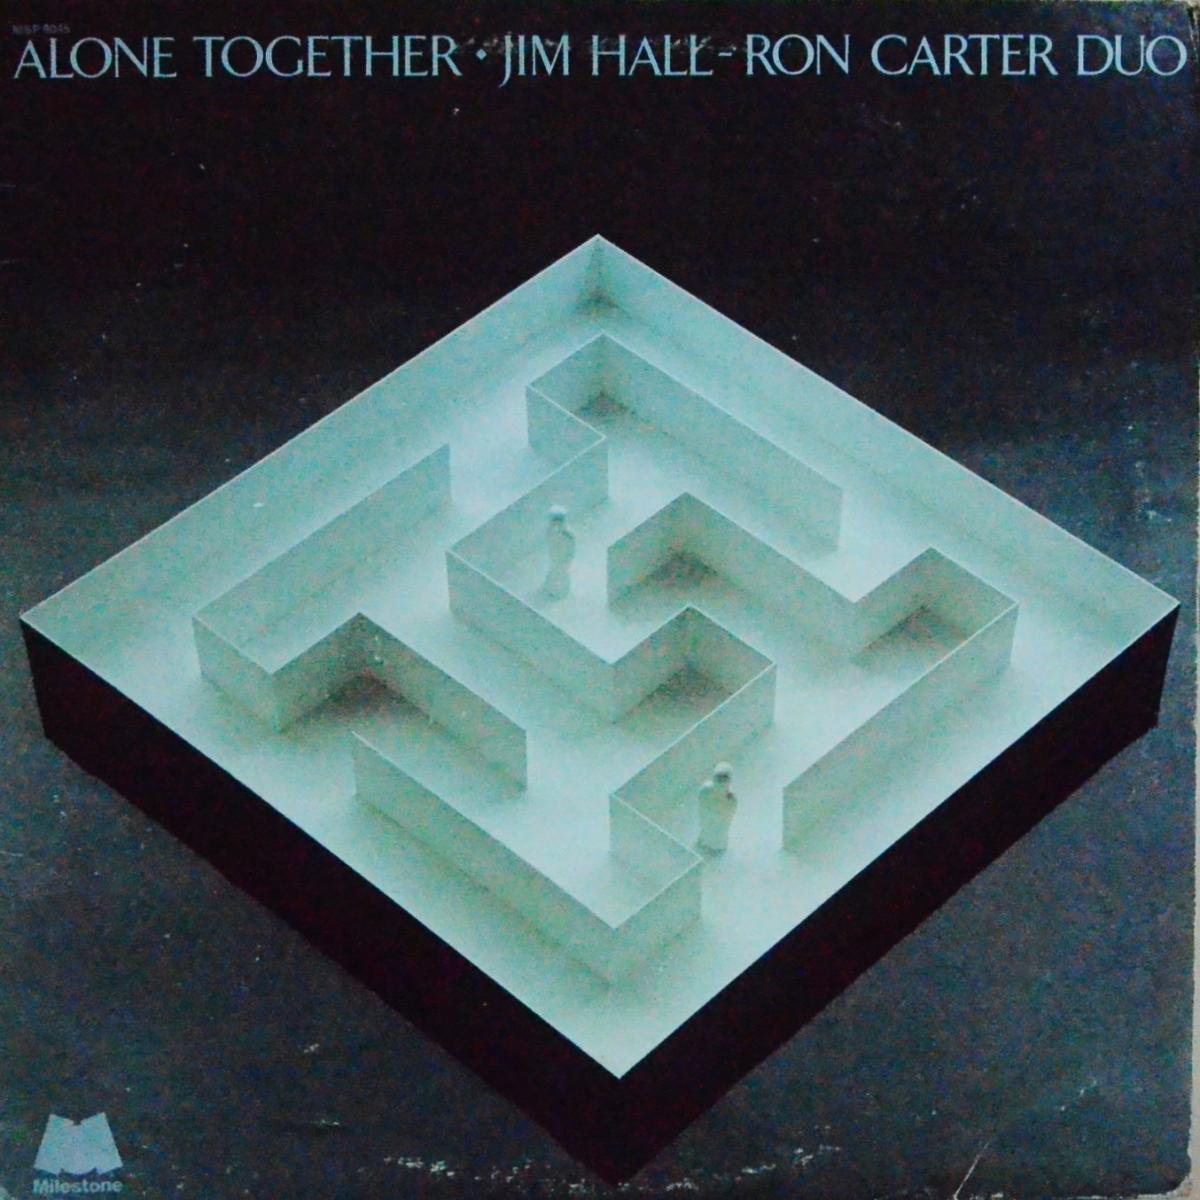 JIM HALL-RON CARTER DUO / ALONE TOGETHER (LP)